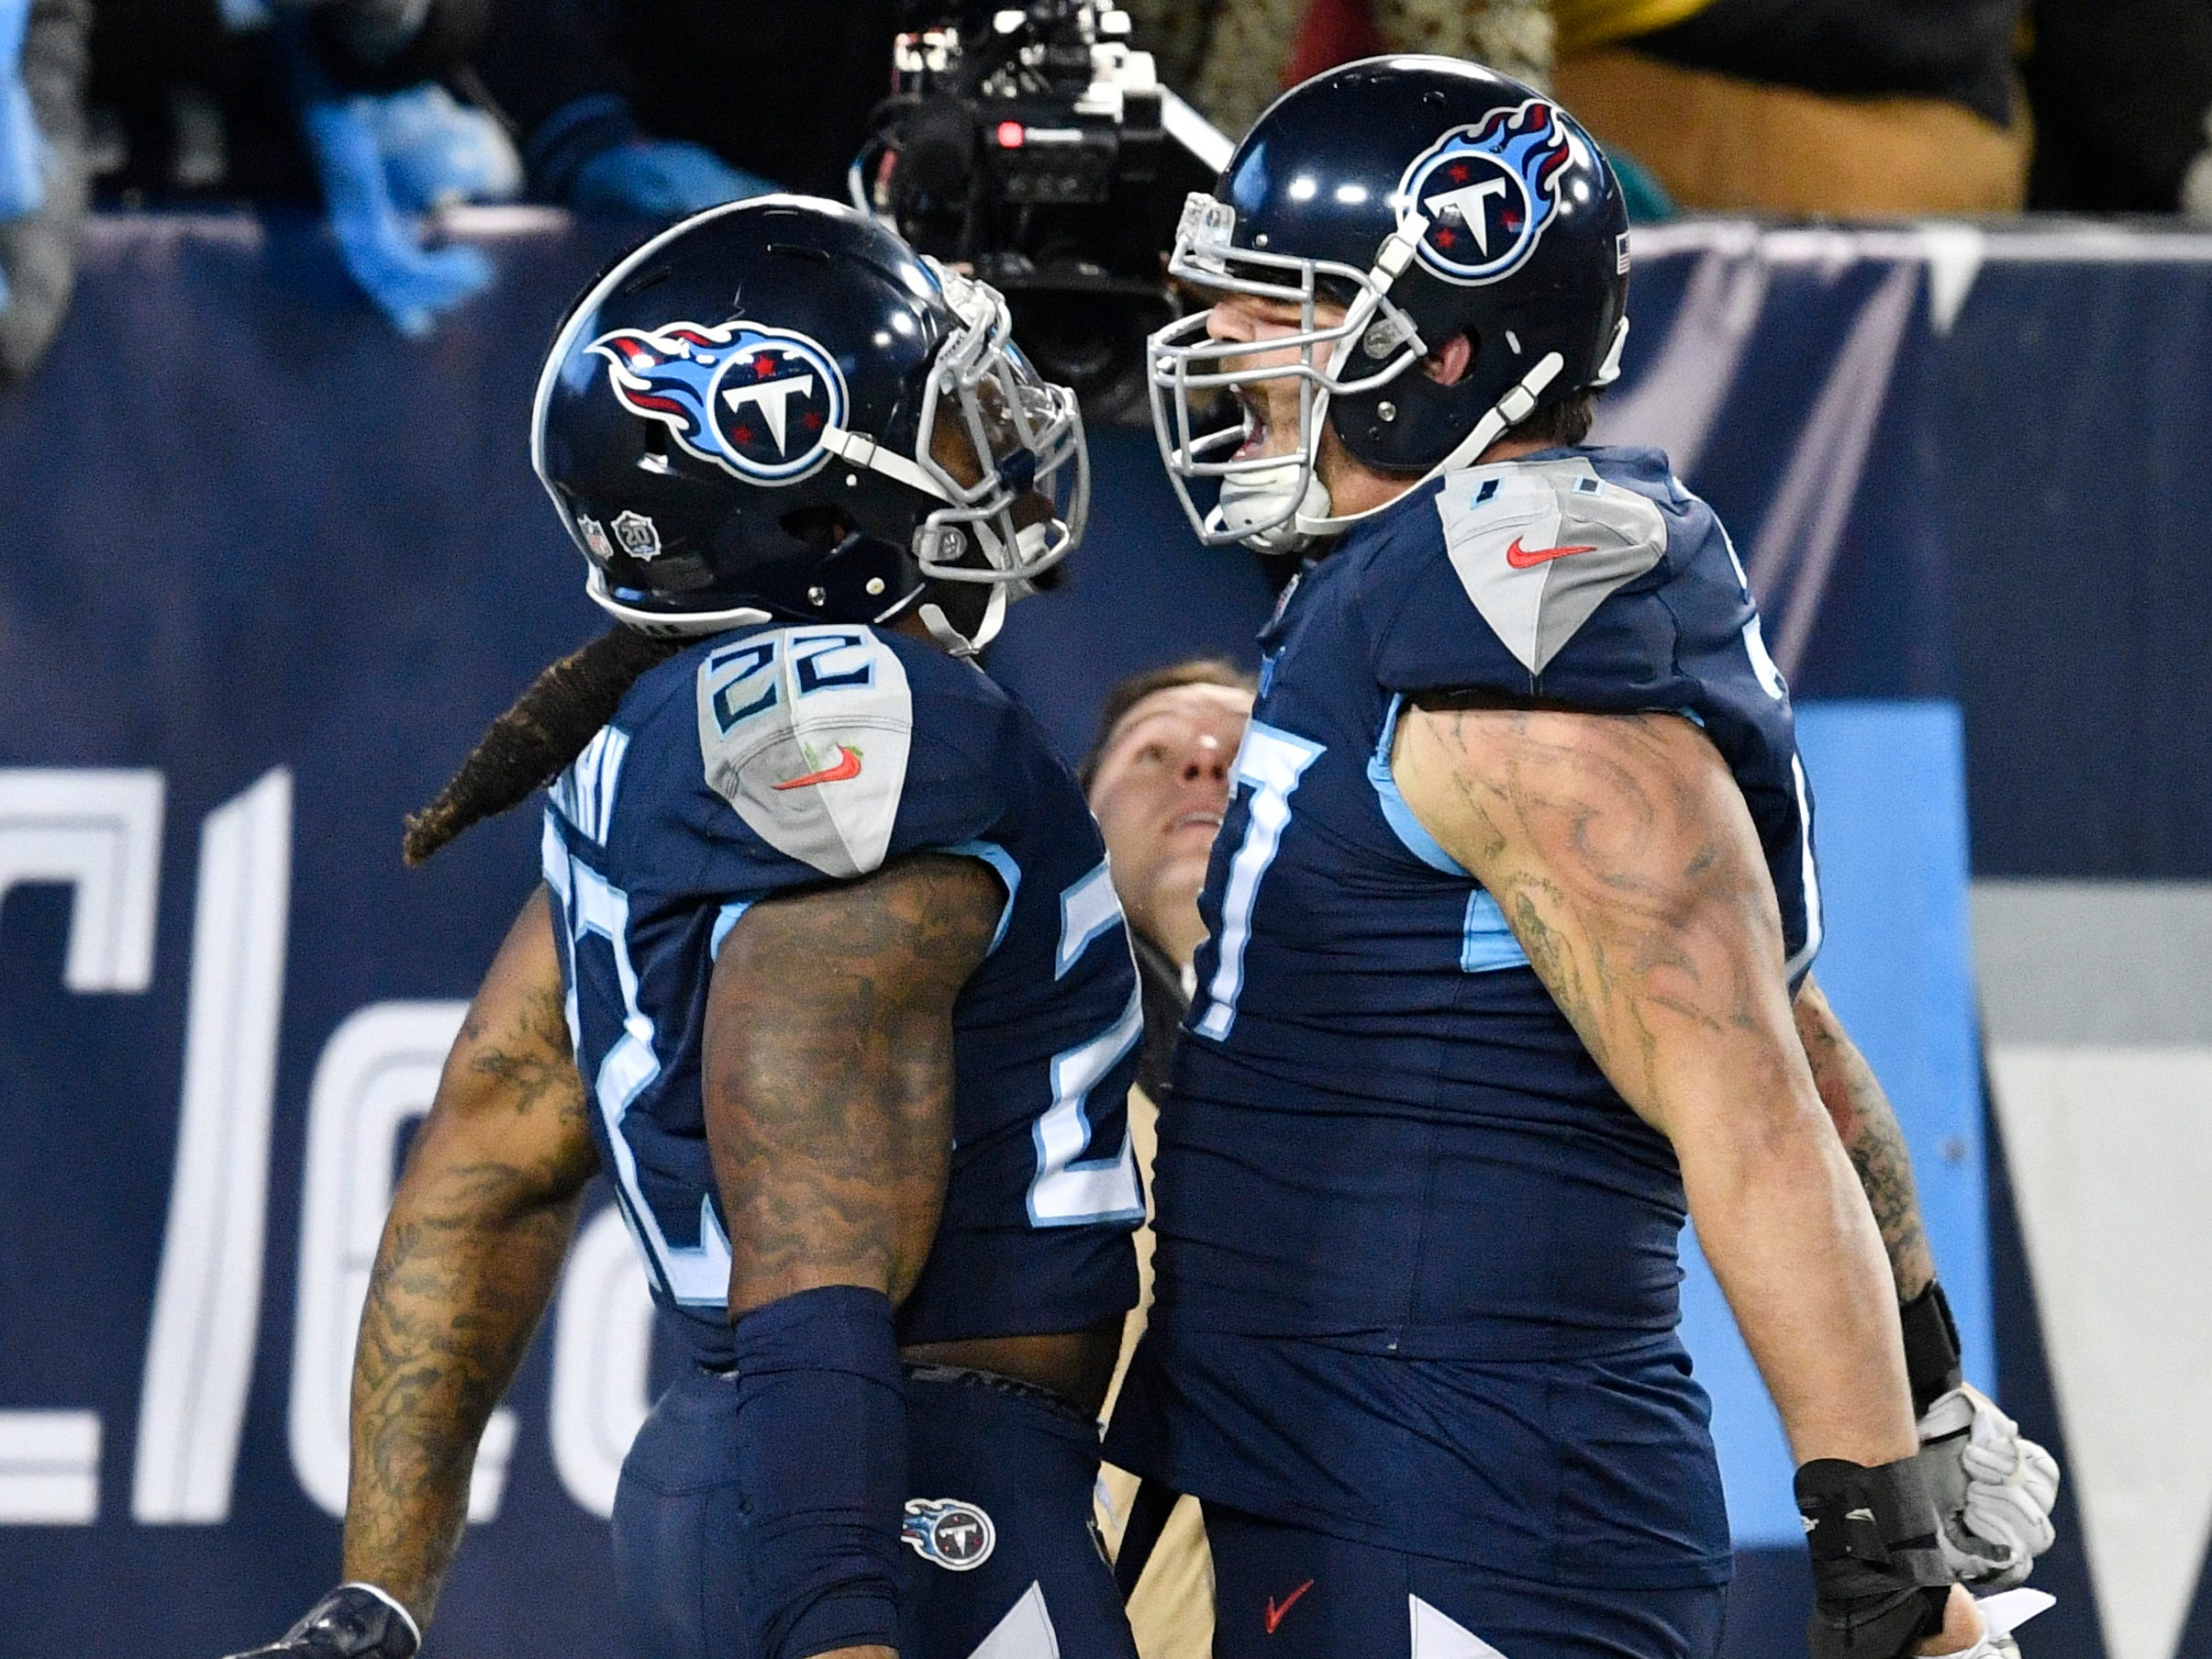 Titans running back Derrick Henry (22) celebrates his 99-yard touchdown with offensive tackle Taylor Lewan (77) in the second quarter at Nissan Stadium Thursday, Dec. 6, 2018, in Nashville, Tenn.